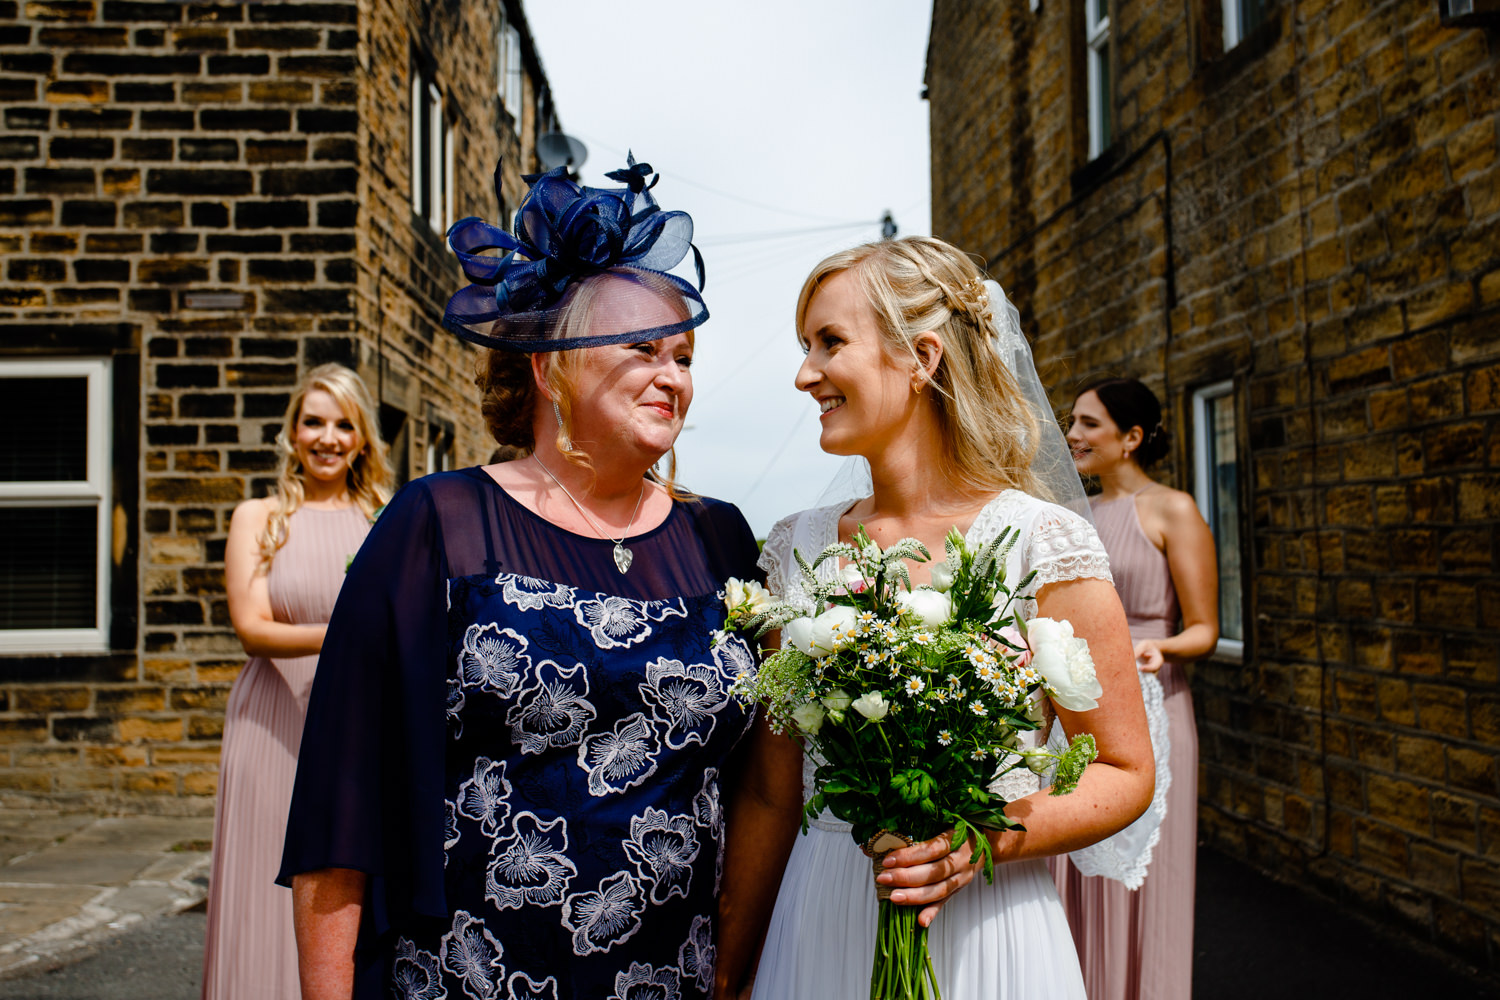 Katie-Luke-Huddersfield-wedding-photographer-Katie-Luke021.jpg